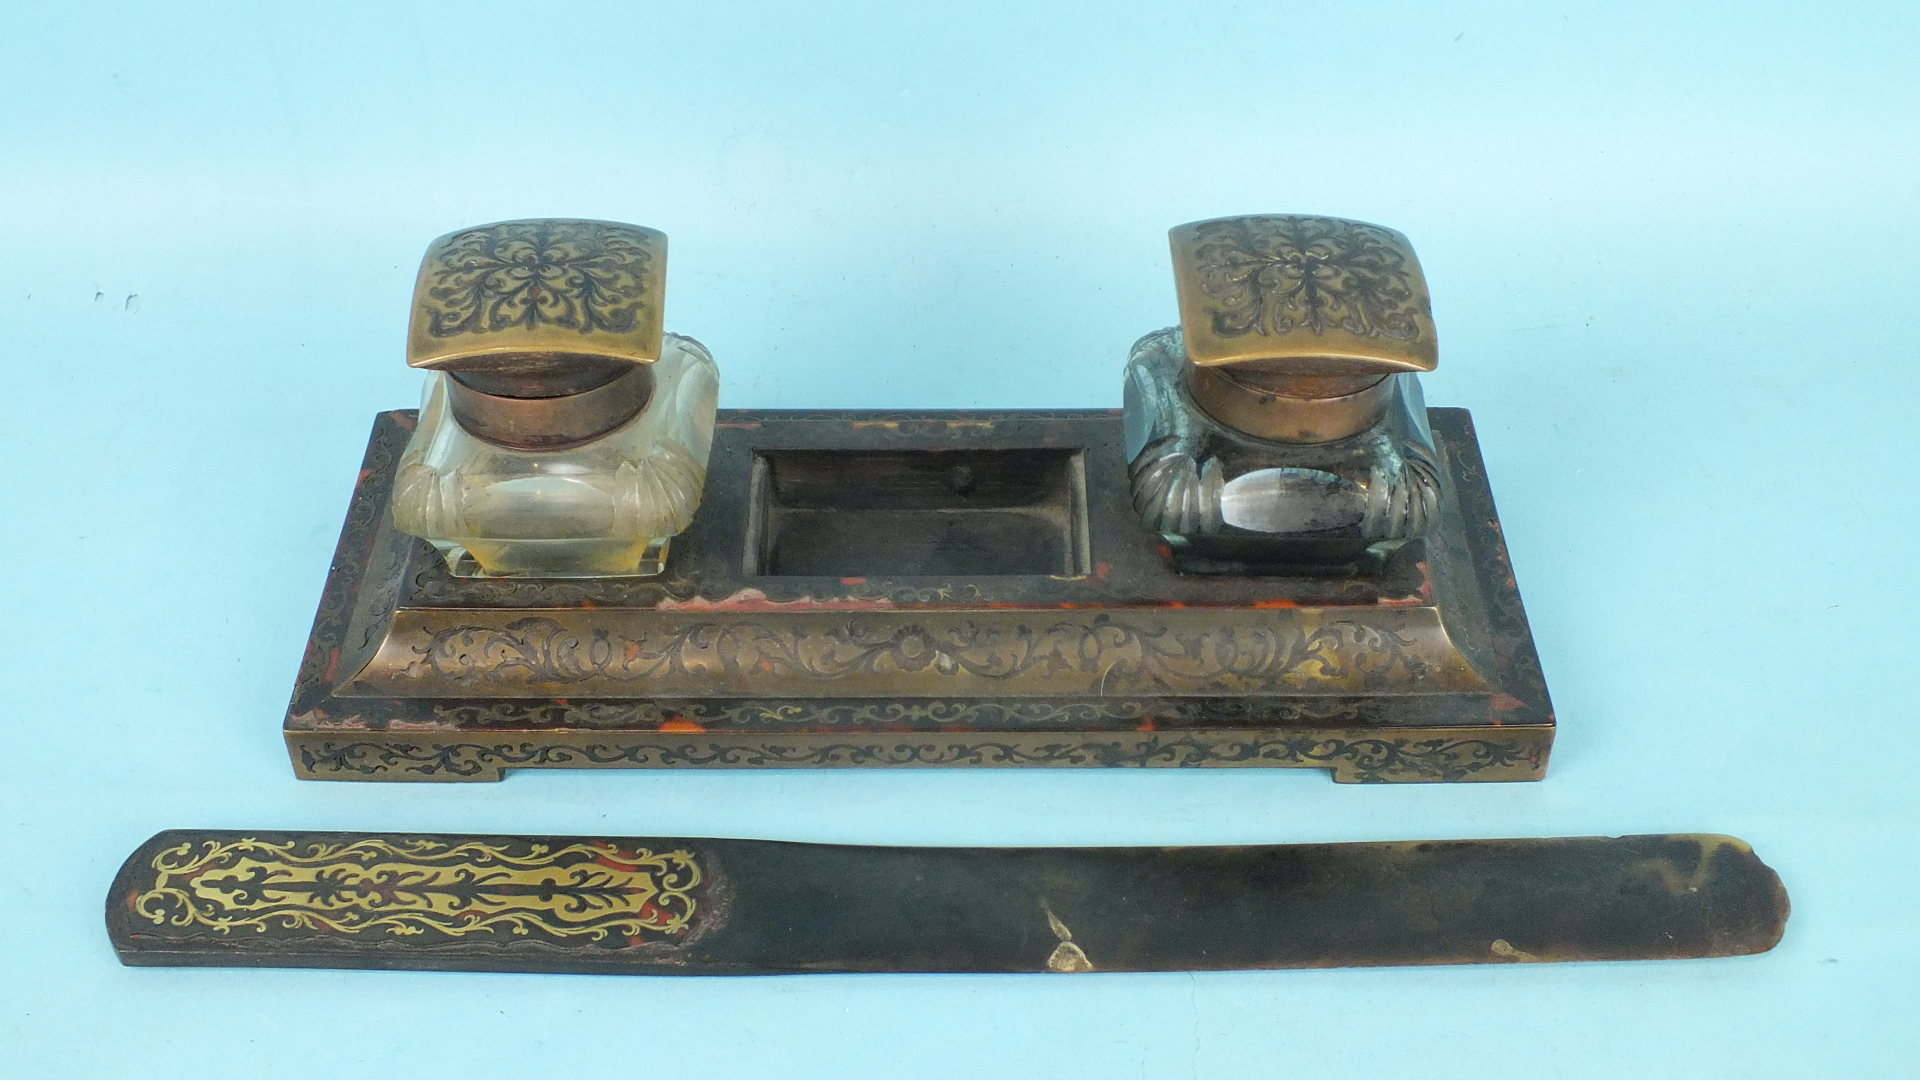 Lot 171 - A 19th century Boulle-work inkstand with two glass wells, on a rectangular stand and a tortoiseshell